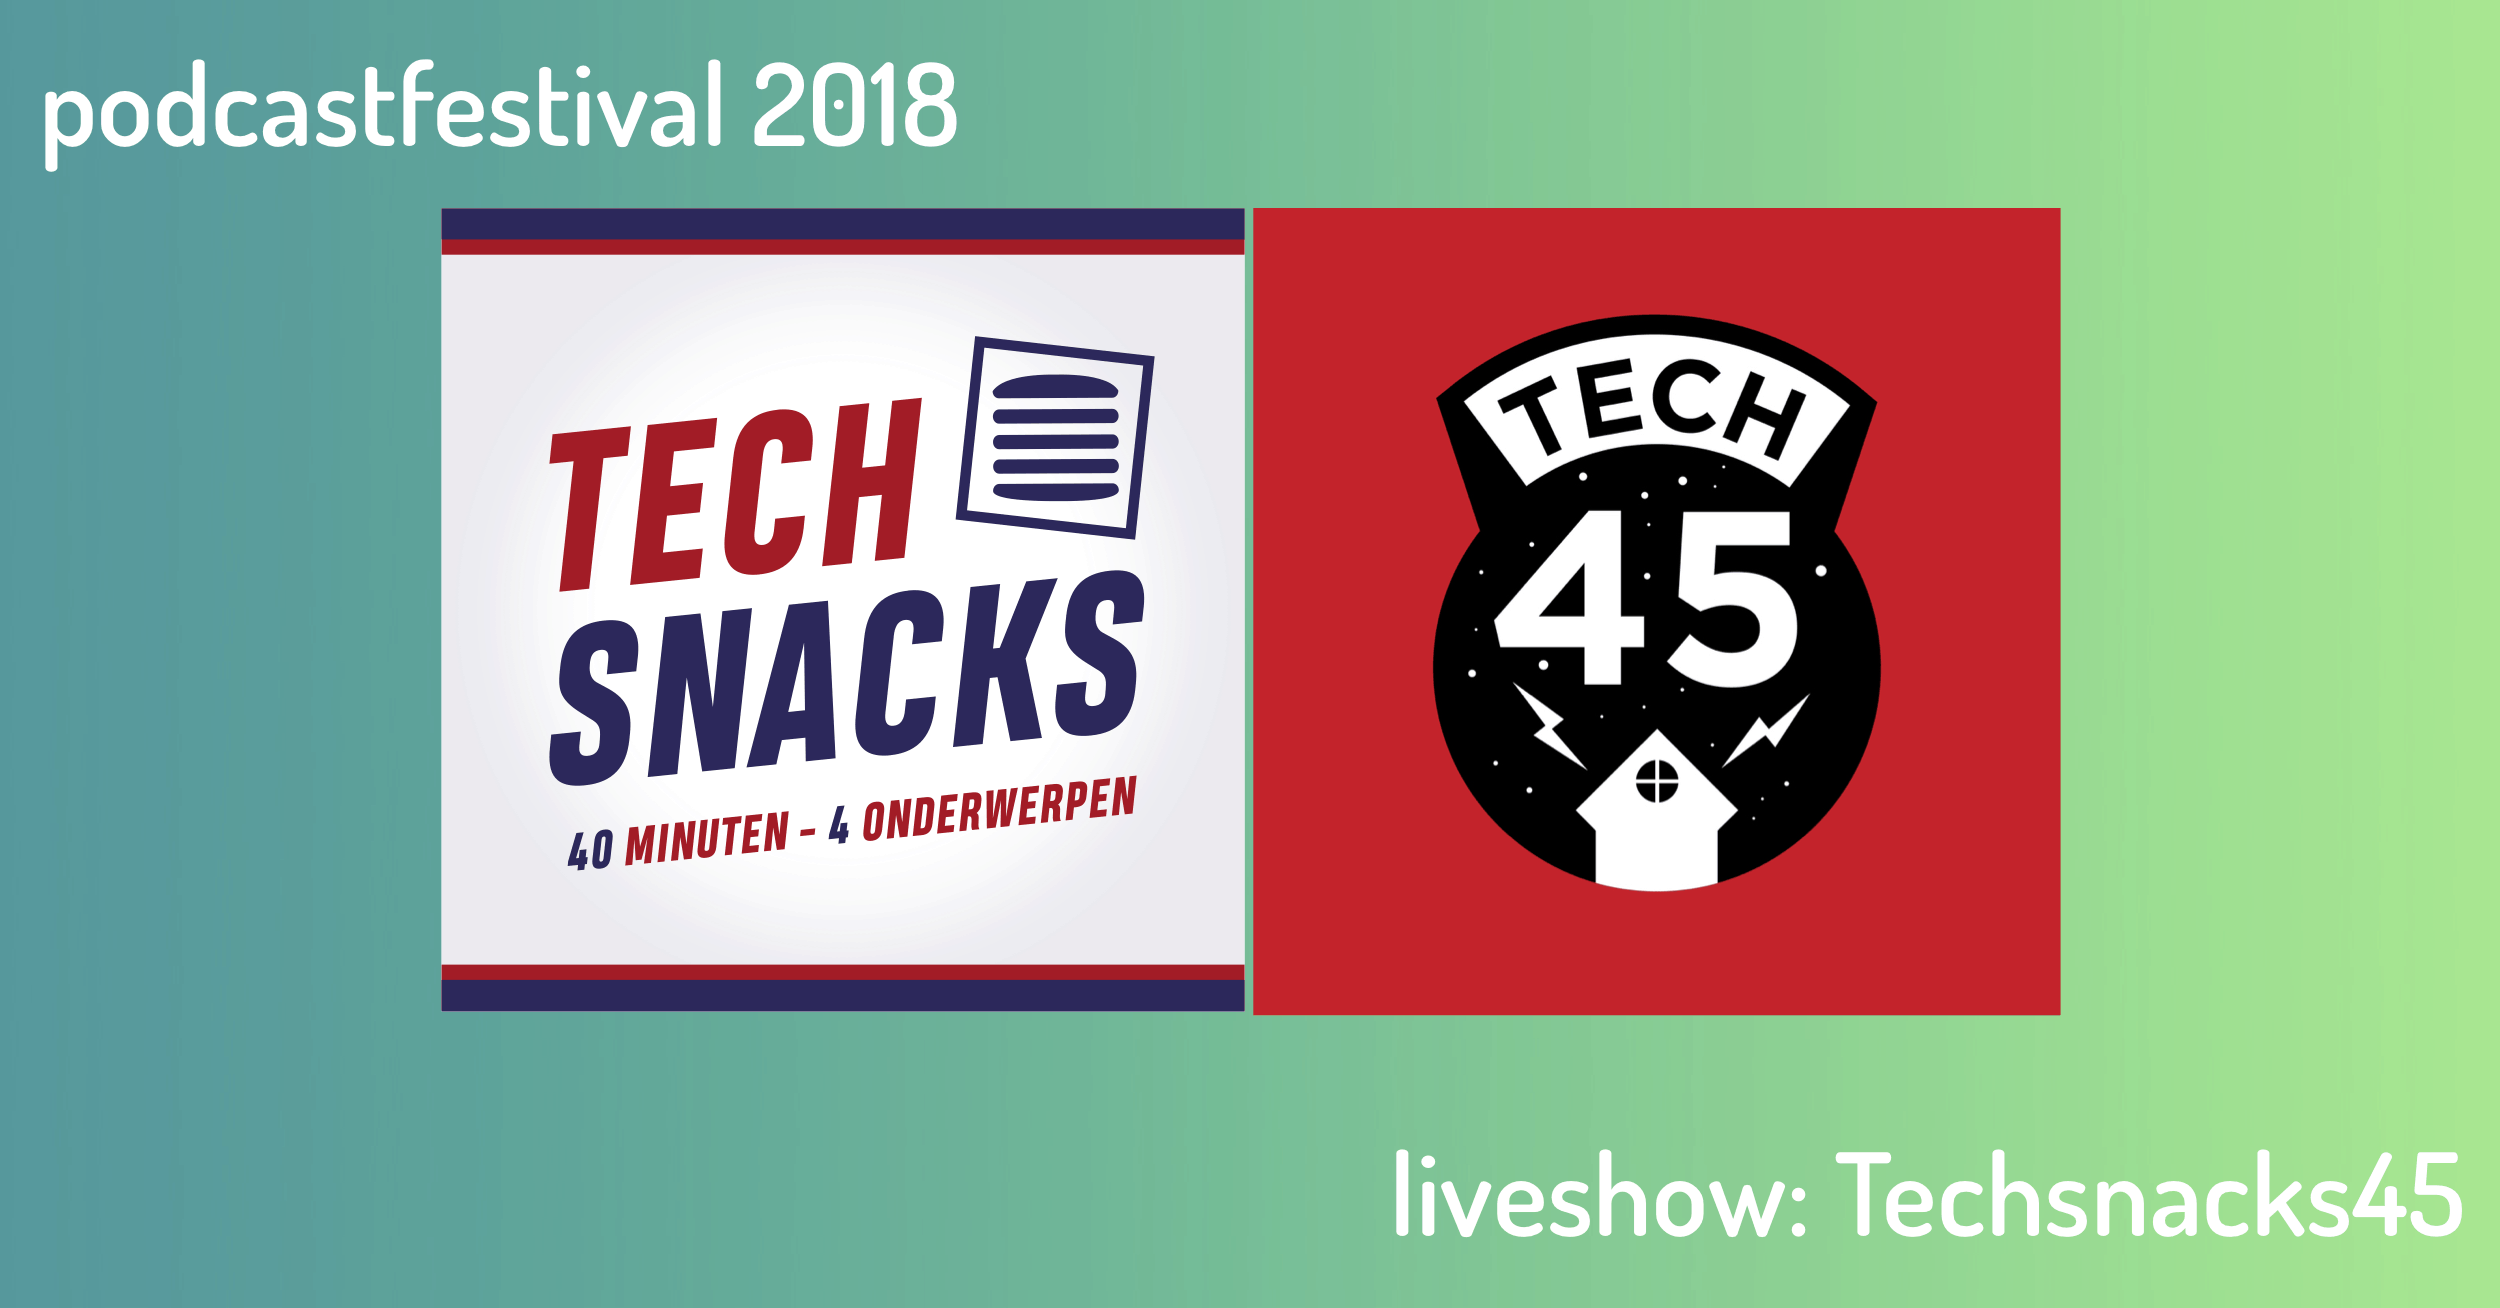 TechSnacks 45 podcastfestival Amsterdam